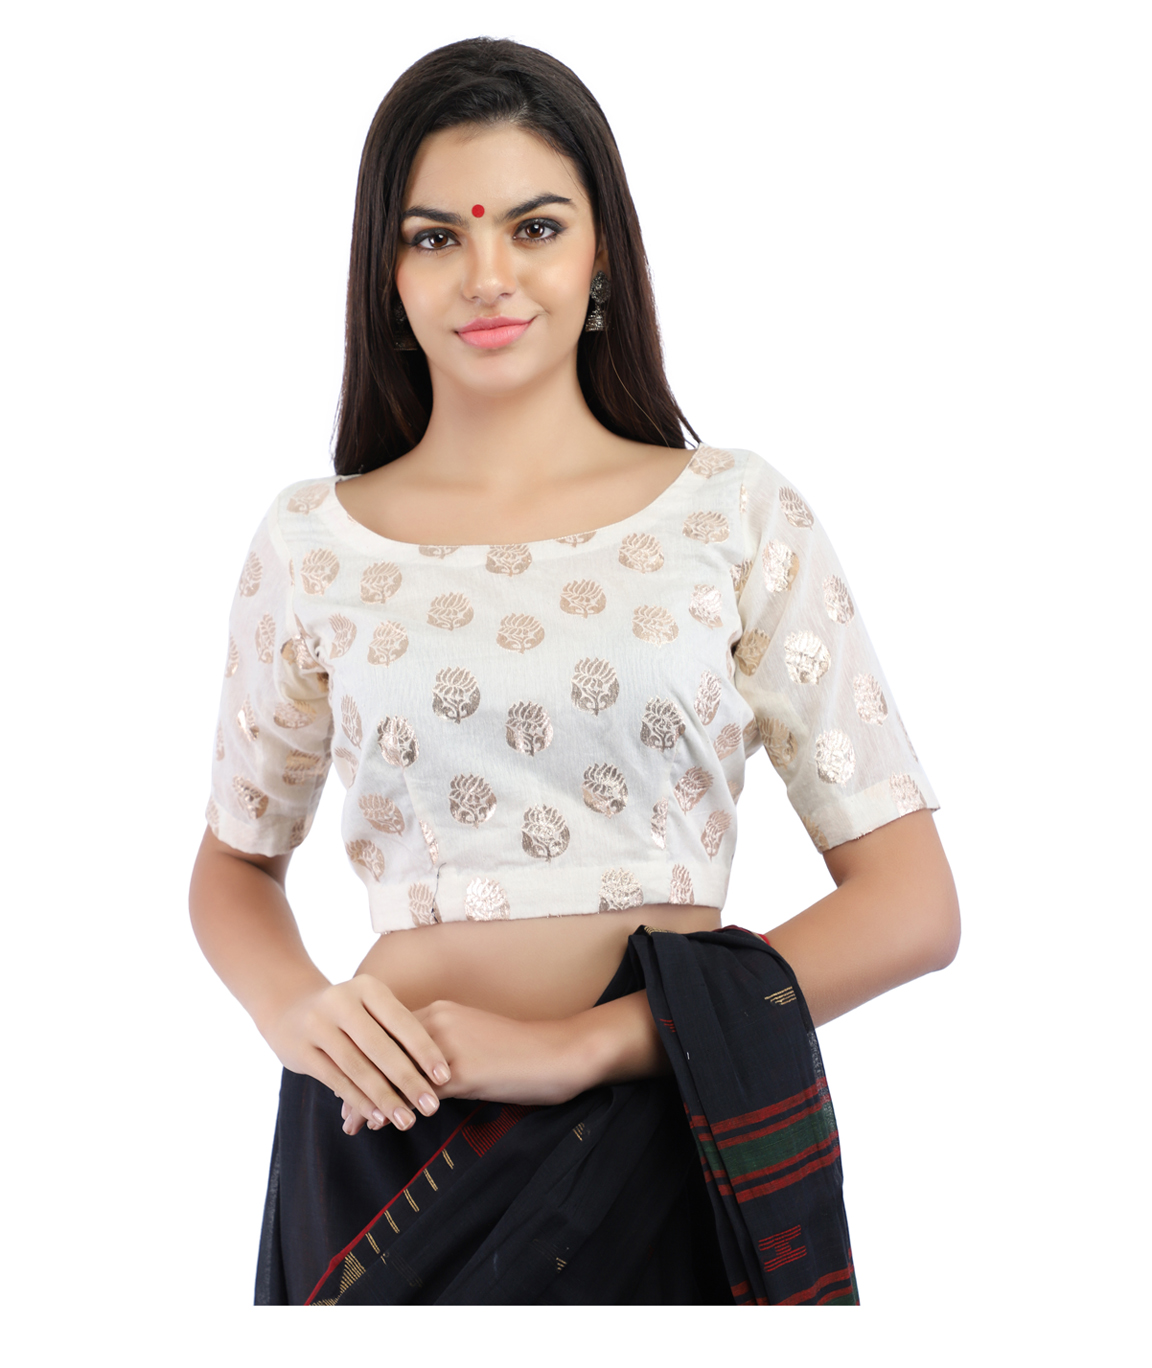 Handloom Banarasi Chanderi Brocade Non-Padded Blouse in White With Hook Closure on Back (COLOUR : WHITE)